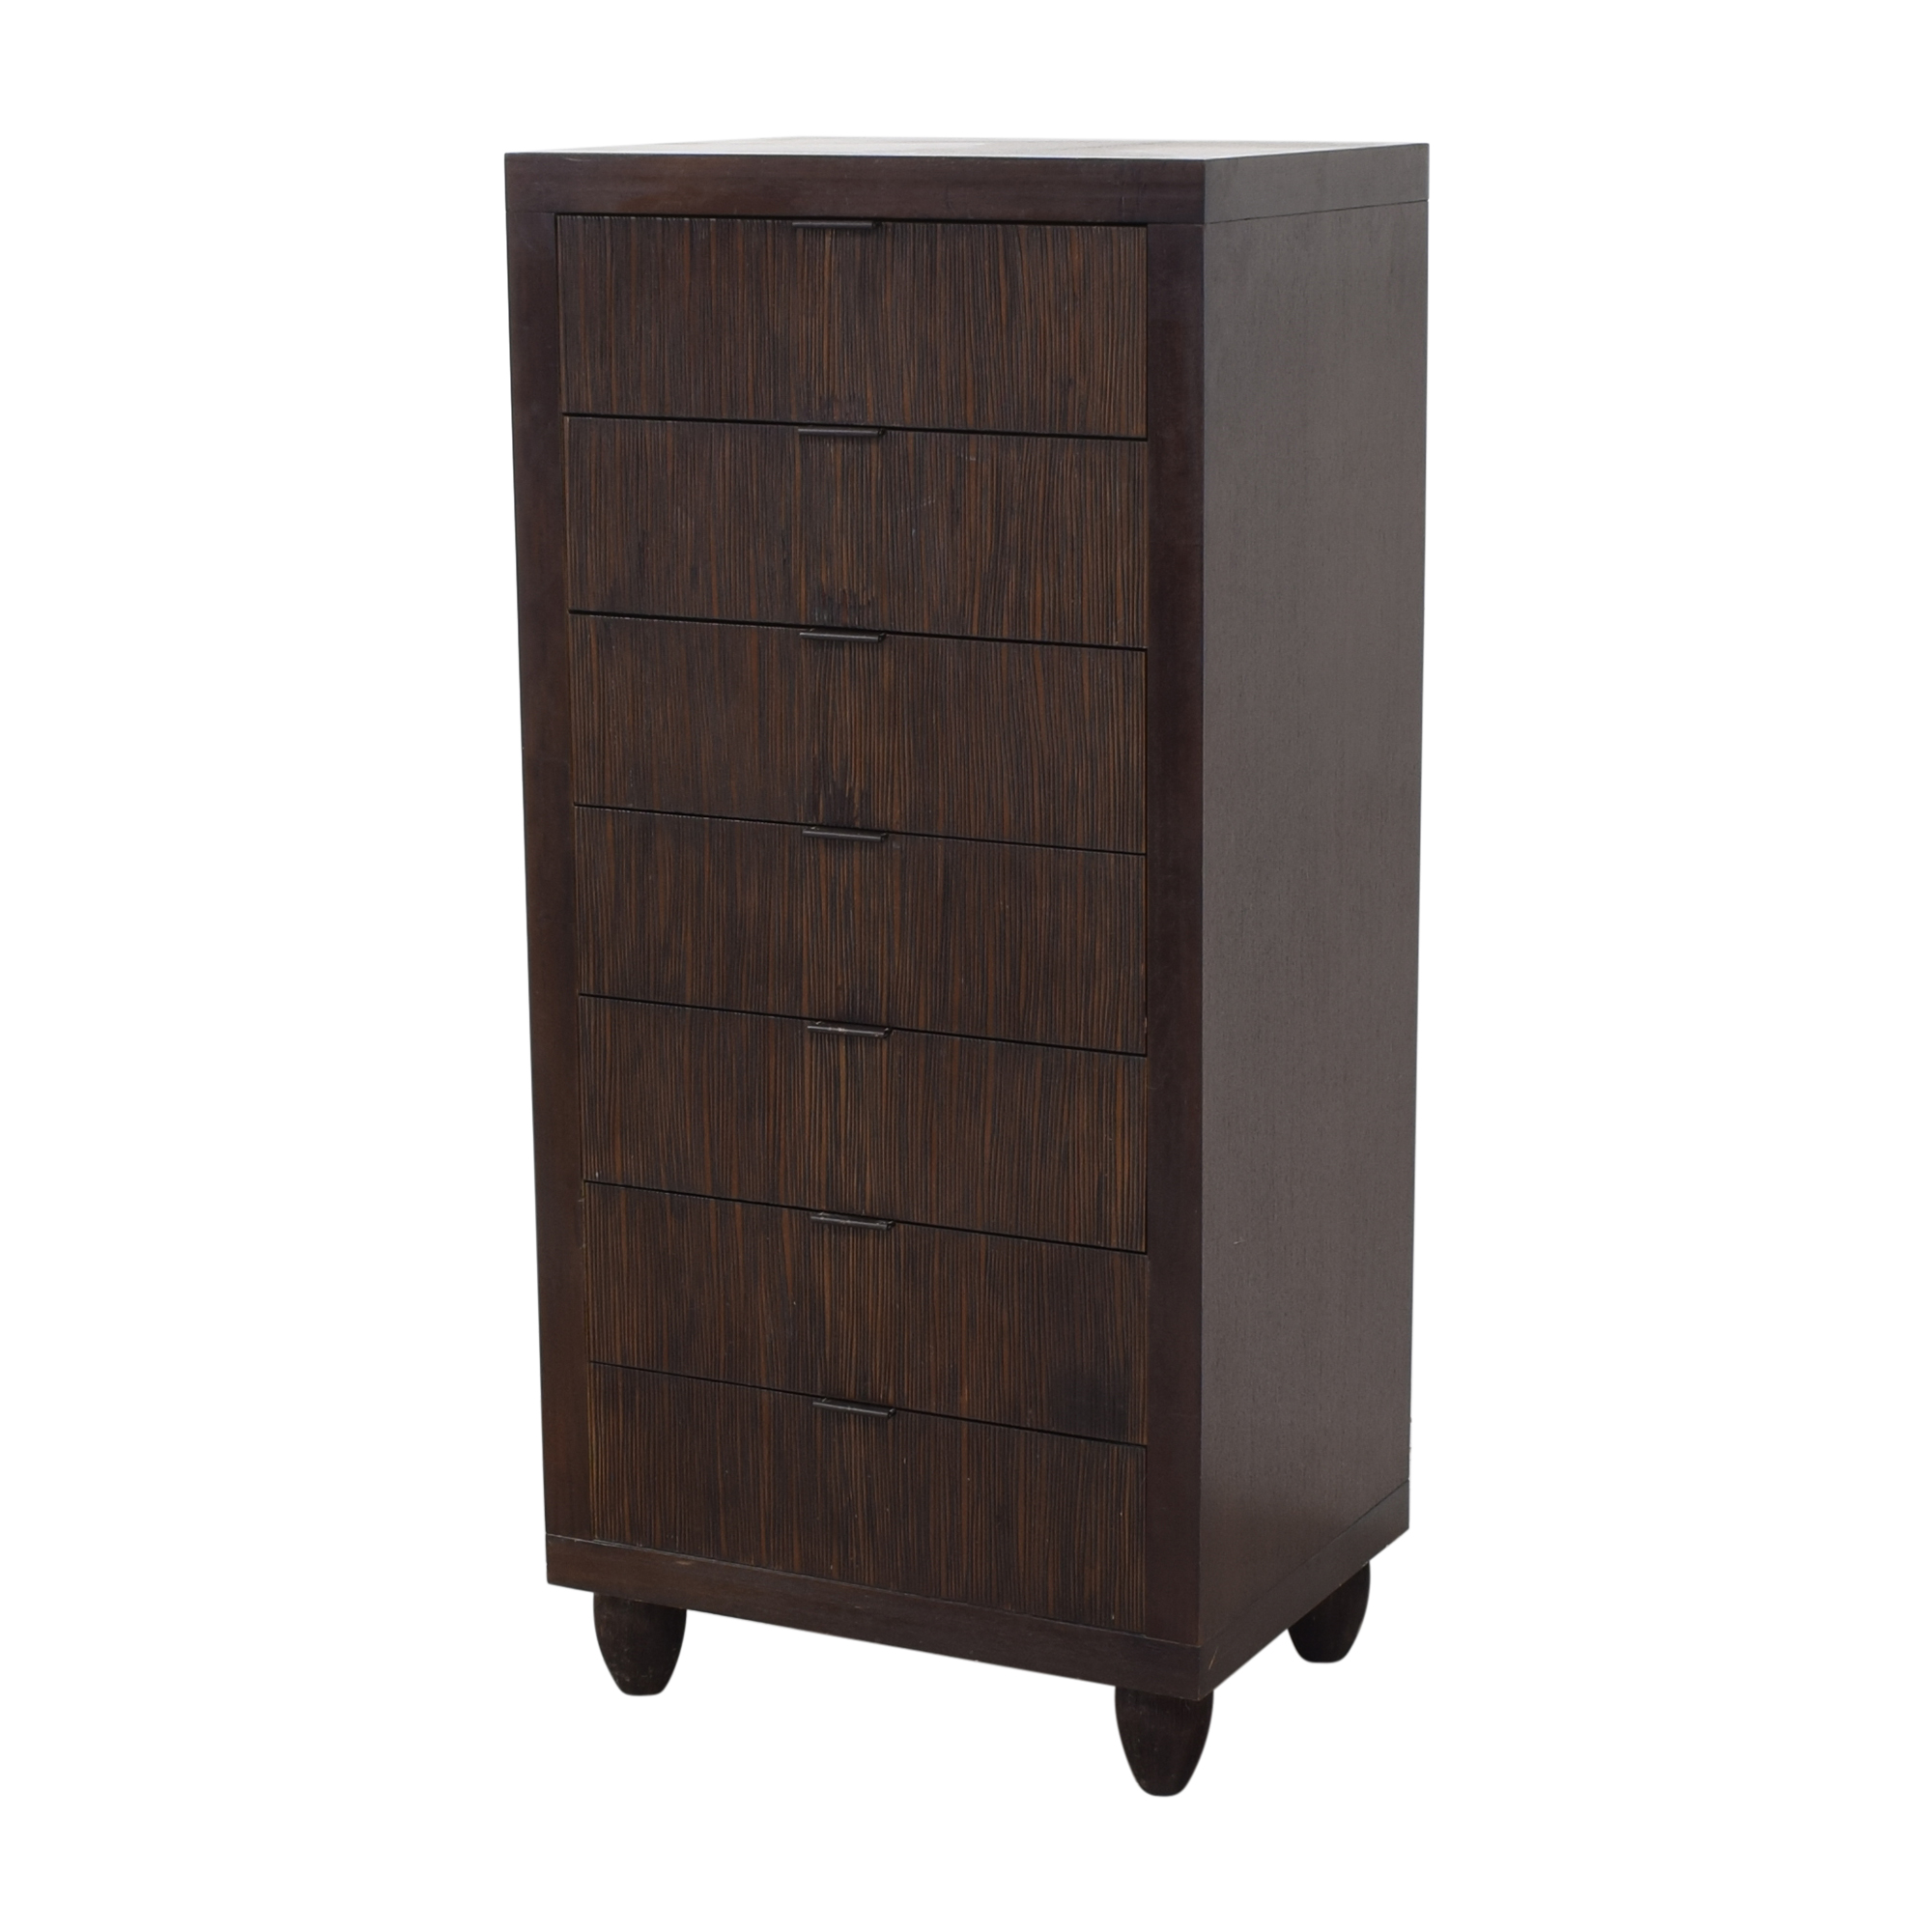 shop Crate & Barrel Tall Chest of Drawers Crate & Barrel Dressers